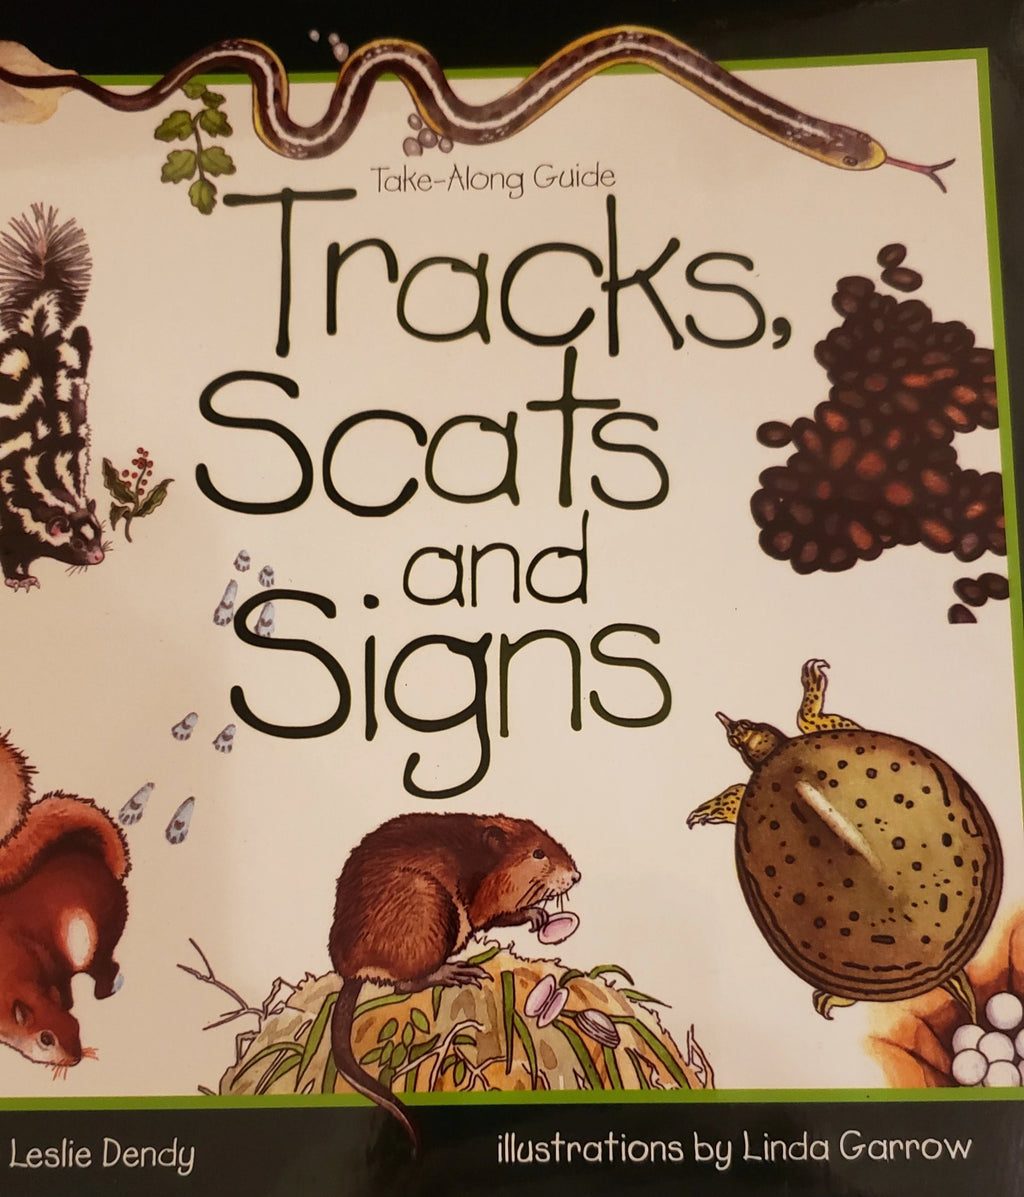 Tracks, Scats and Signs - A Take Along by Leslie Dendy